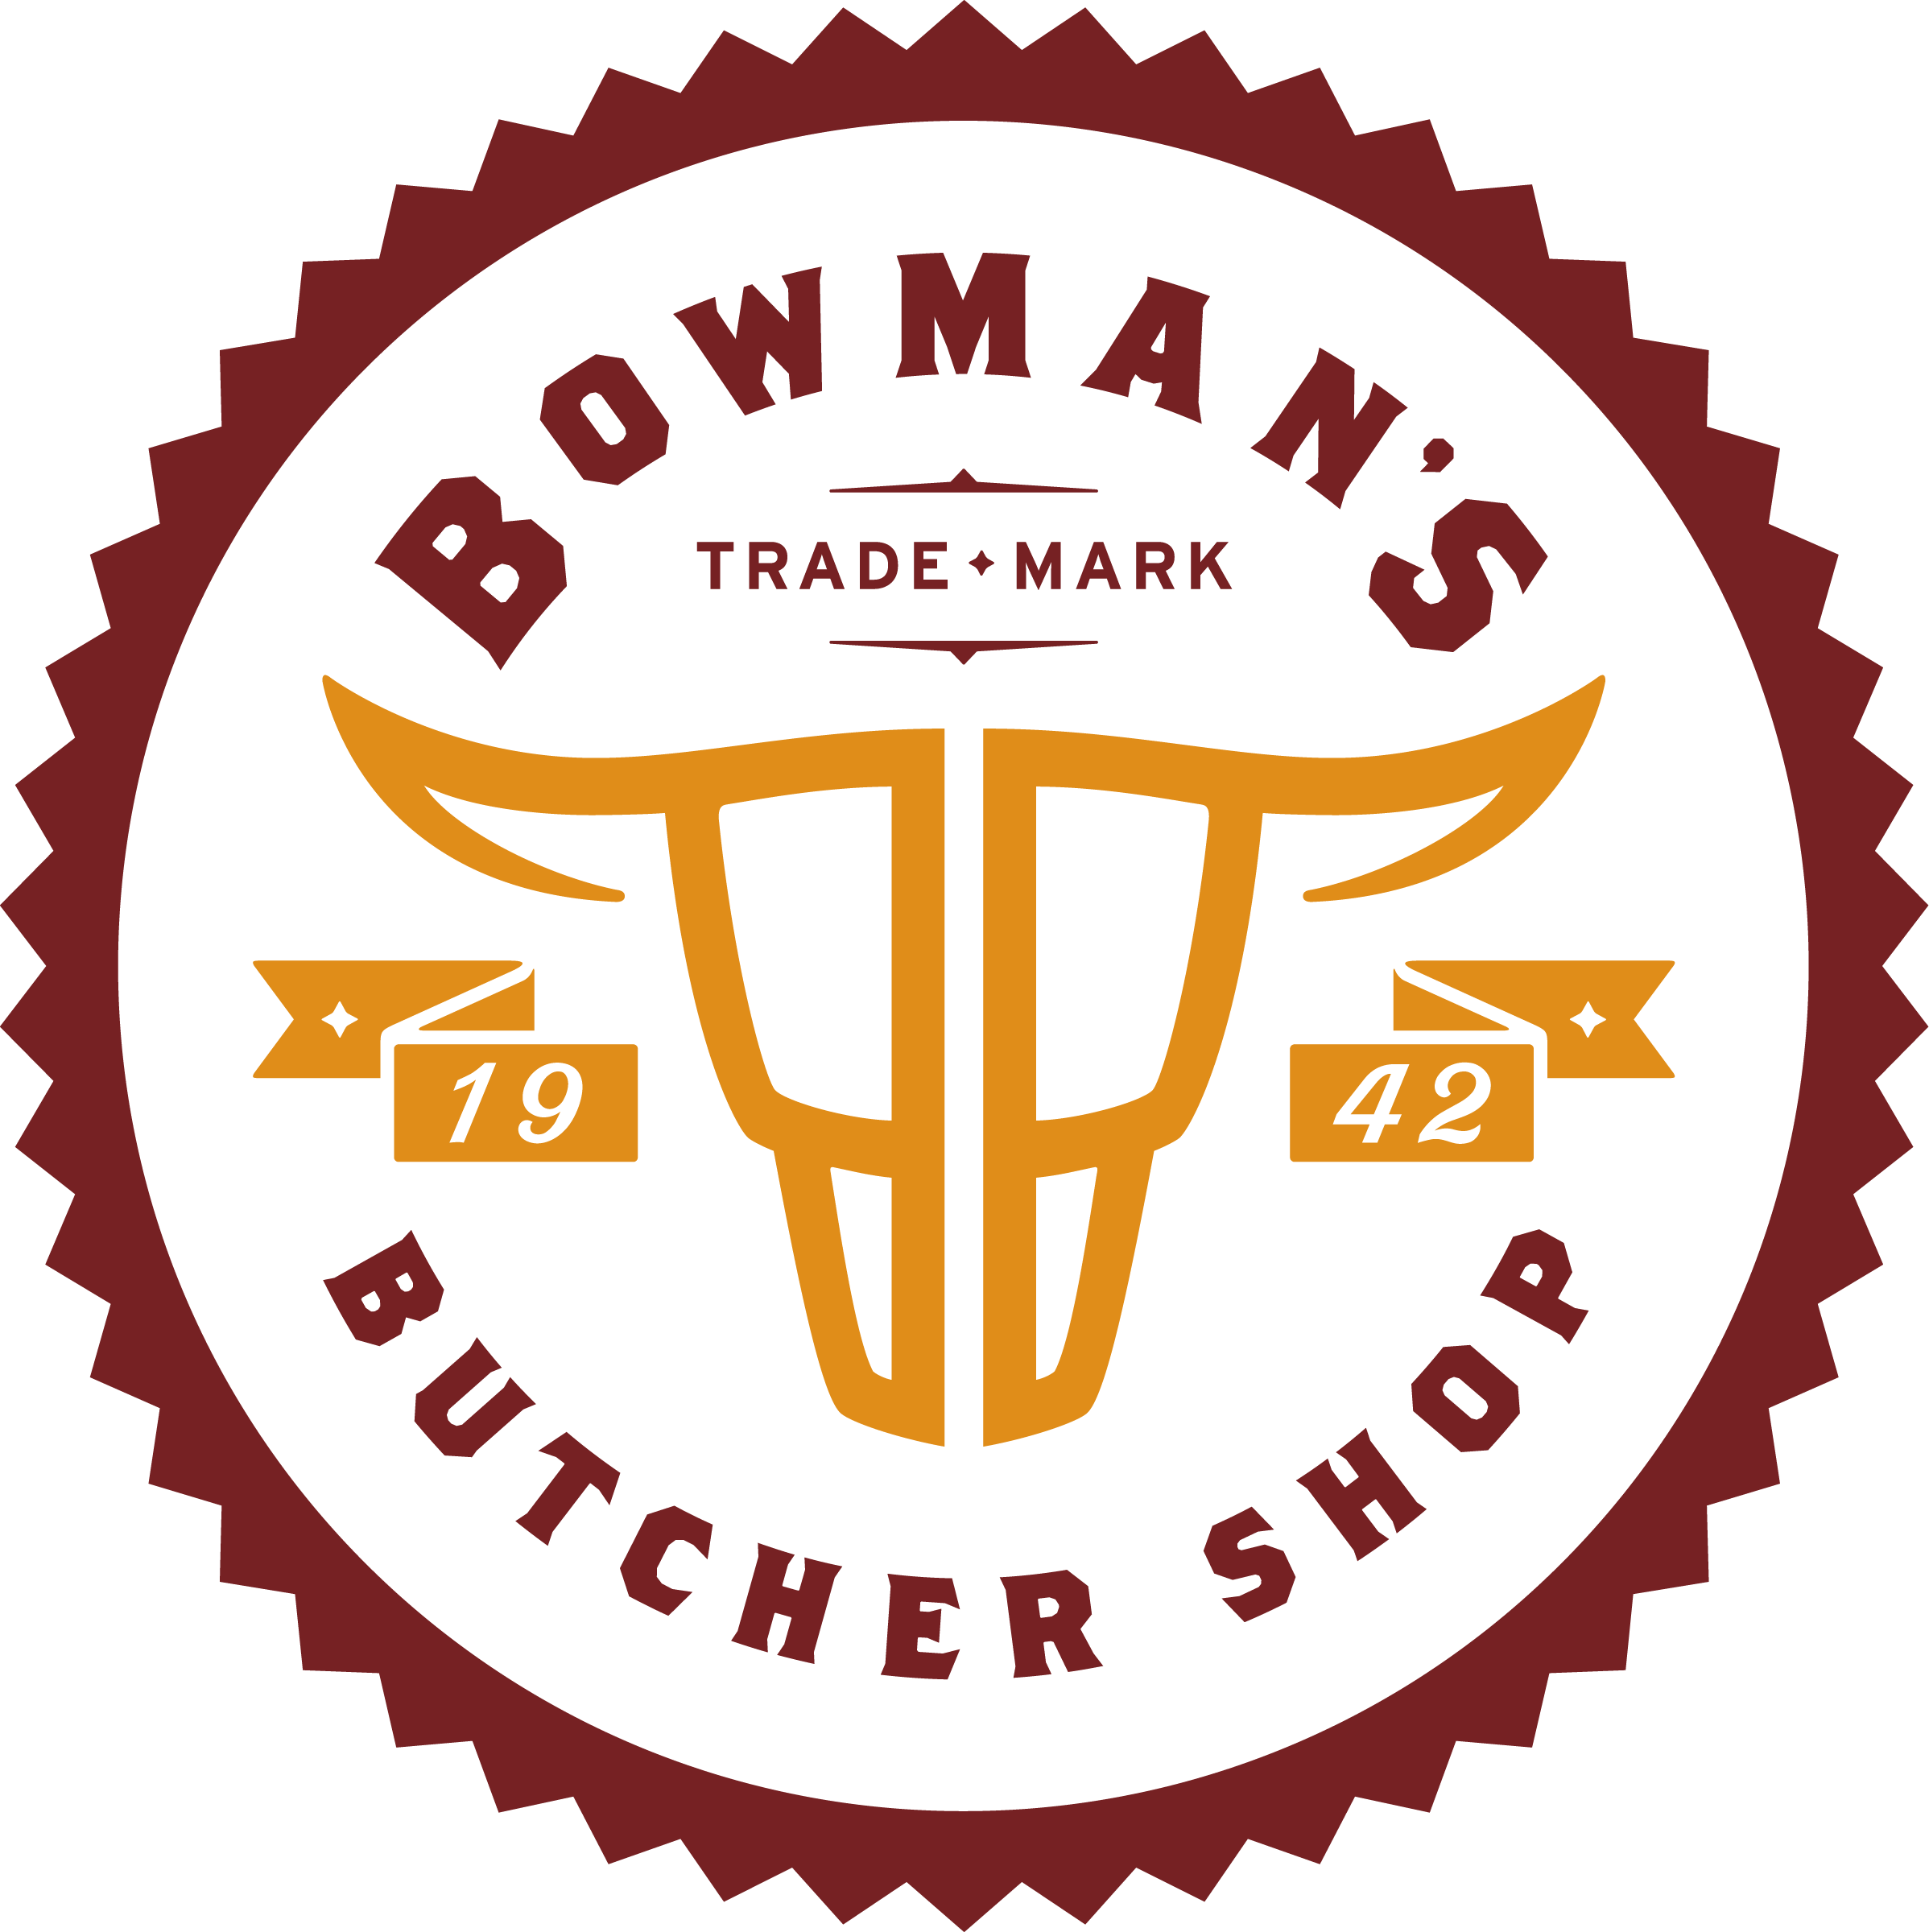 Bowman's Butcher Shop Logo